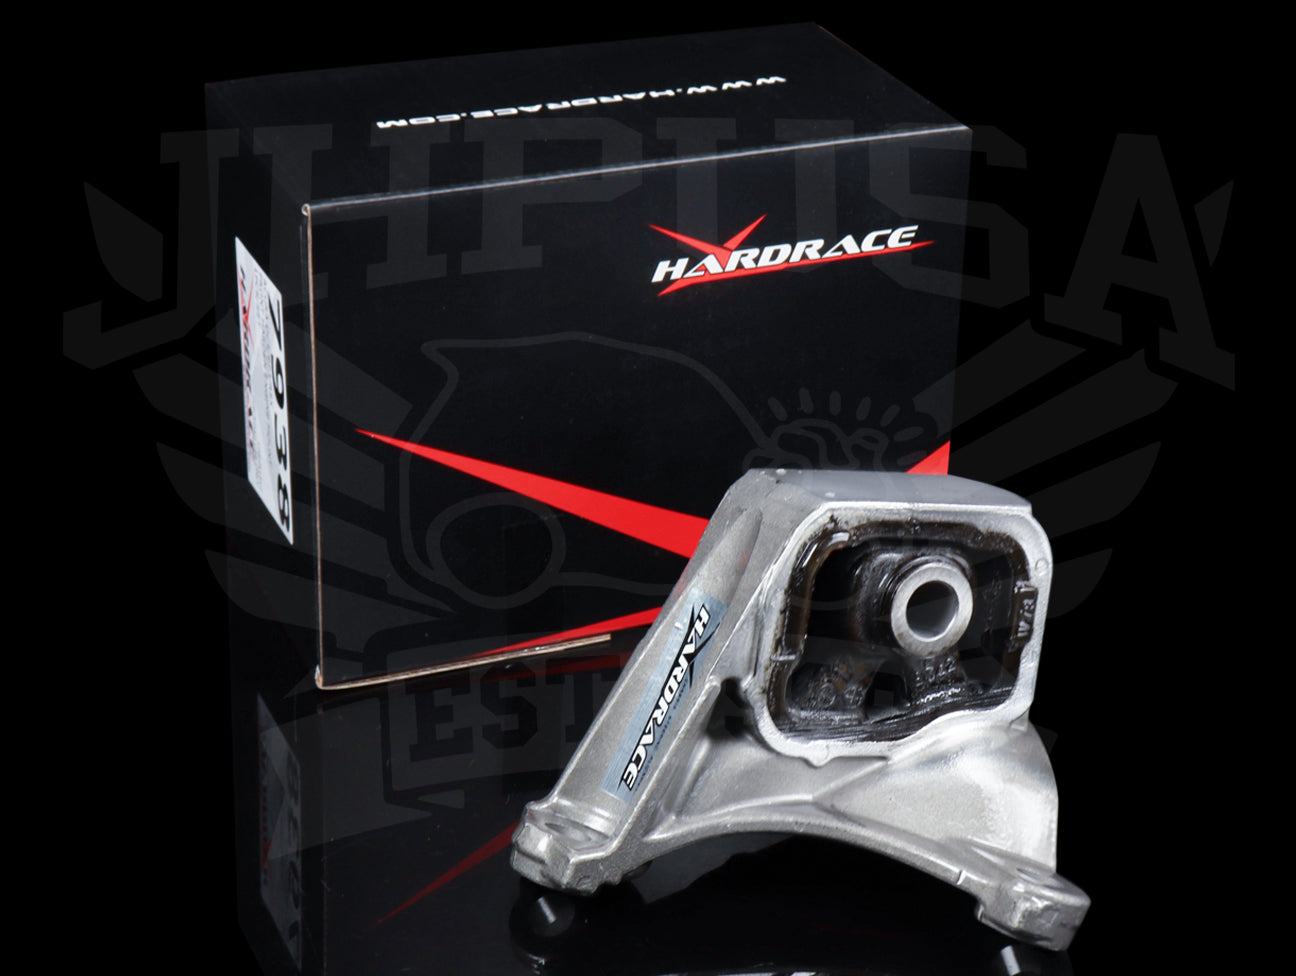 Hardrace Front Engine Mount (Racing) - 02-05 Civic Si / 02-06 RSX